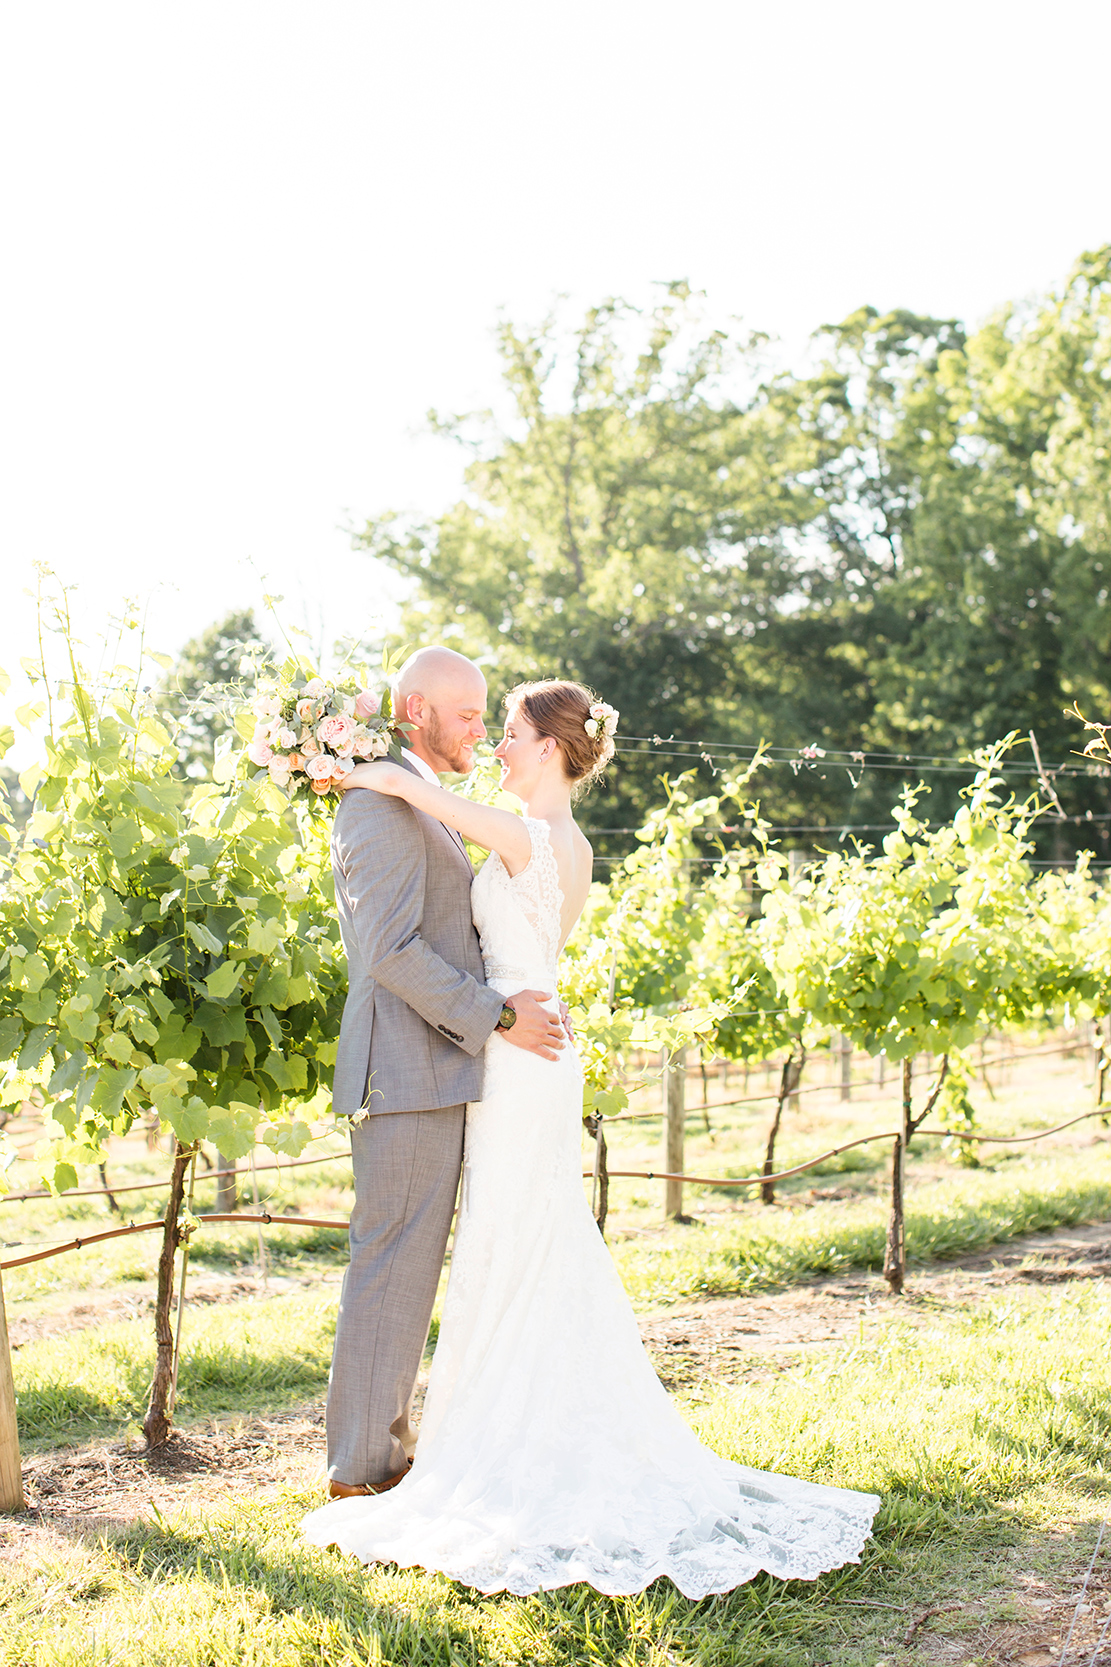 Couple After Outdoor Ceremony at Ashton Creek Vineyard .jpg